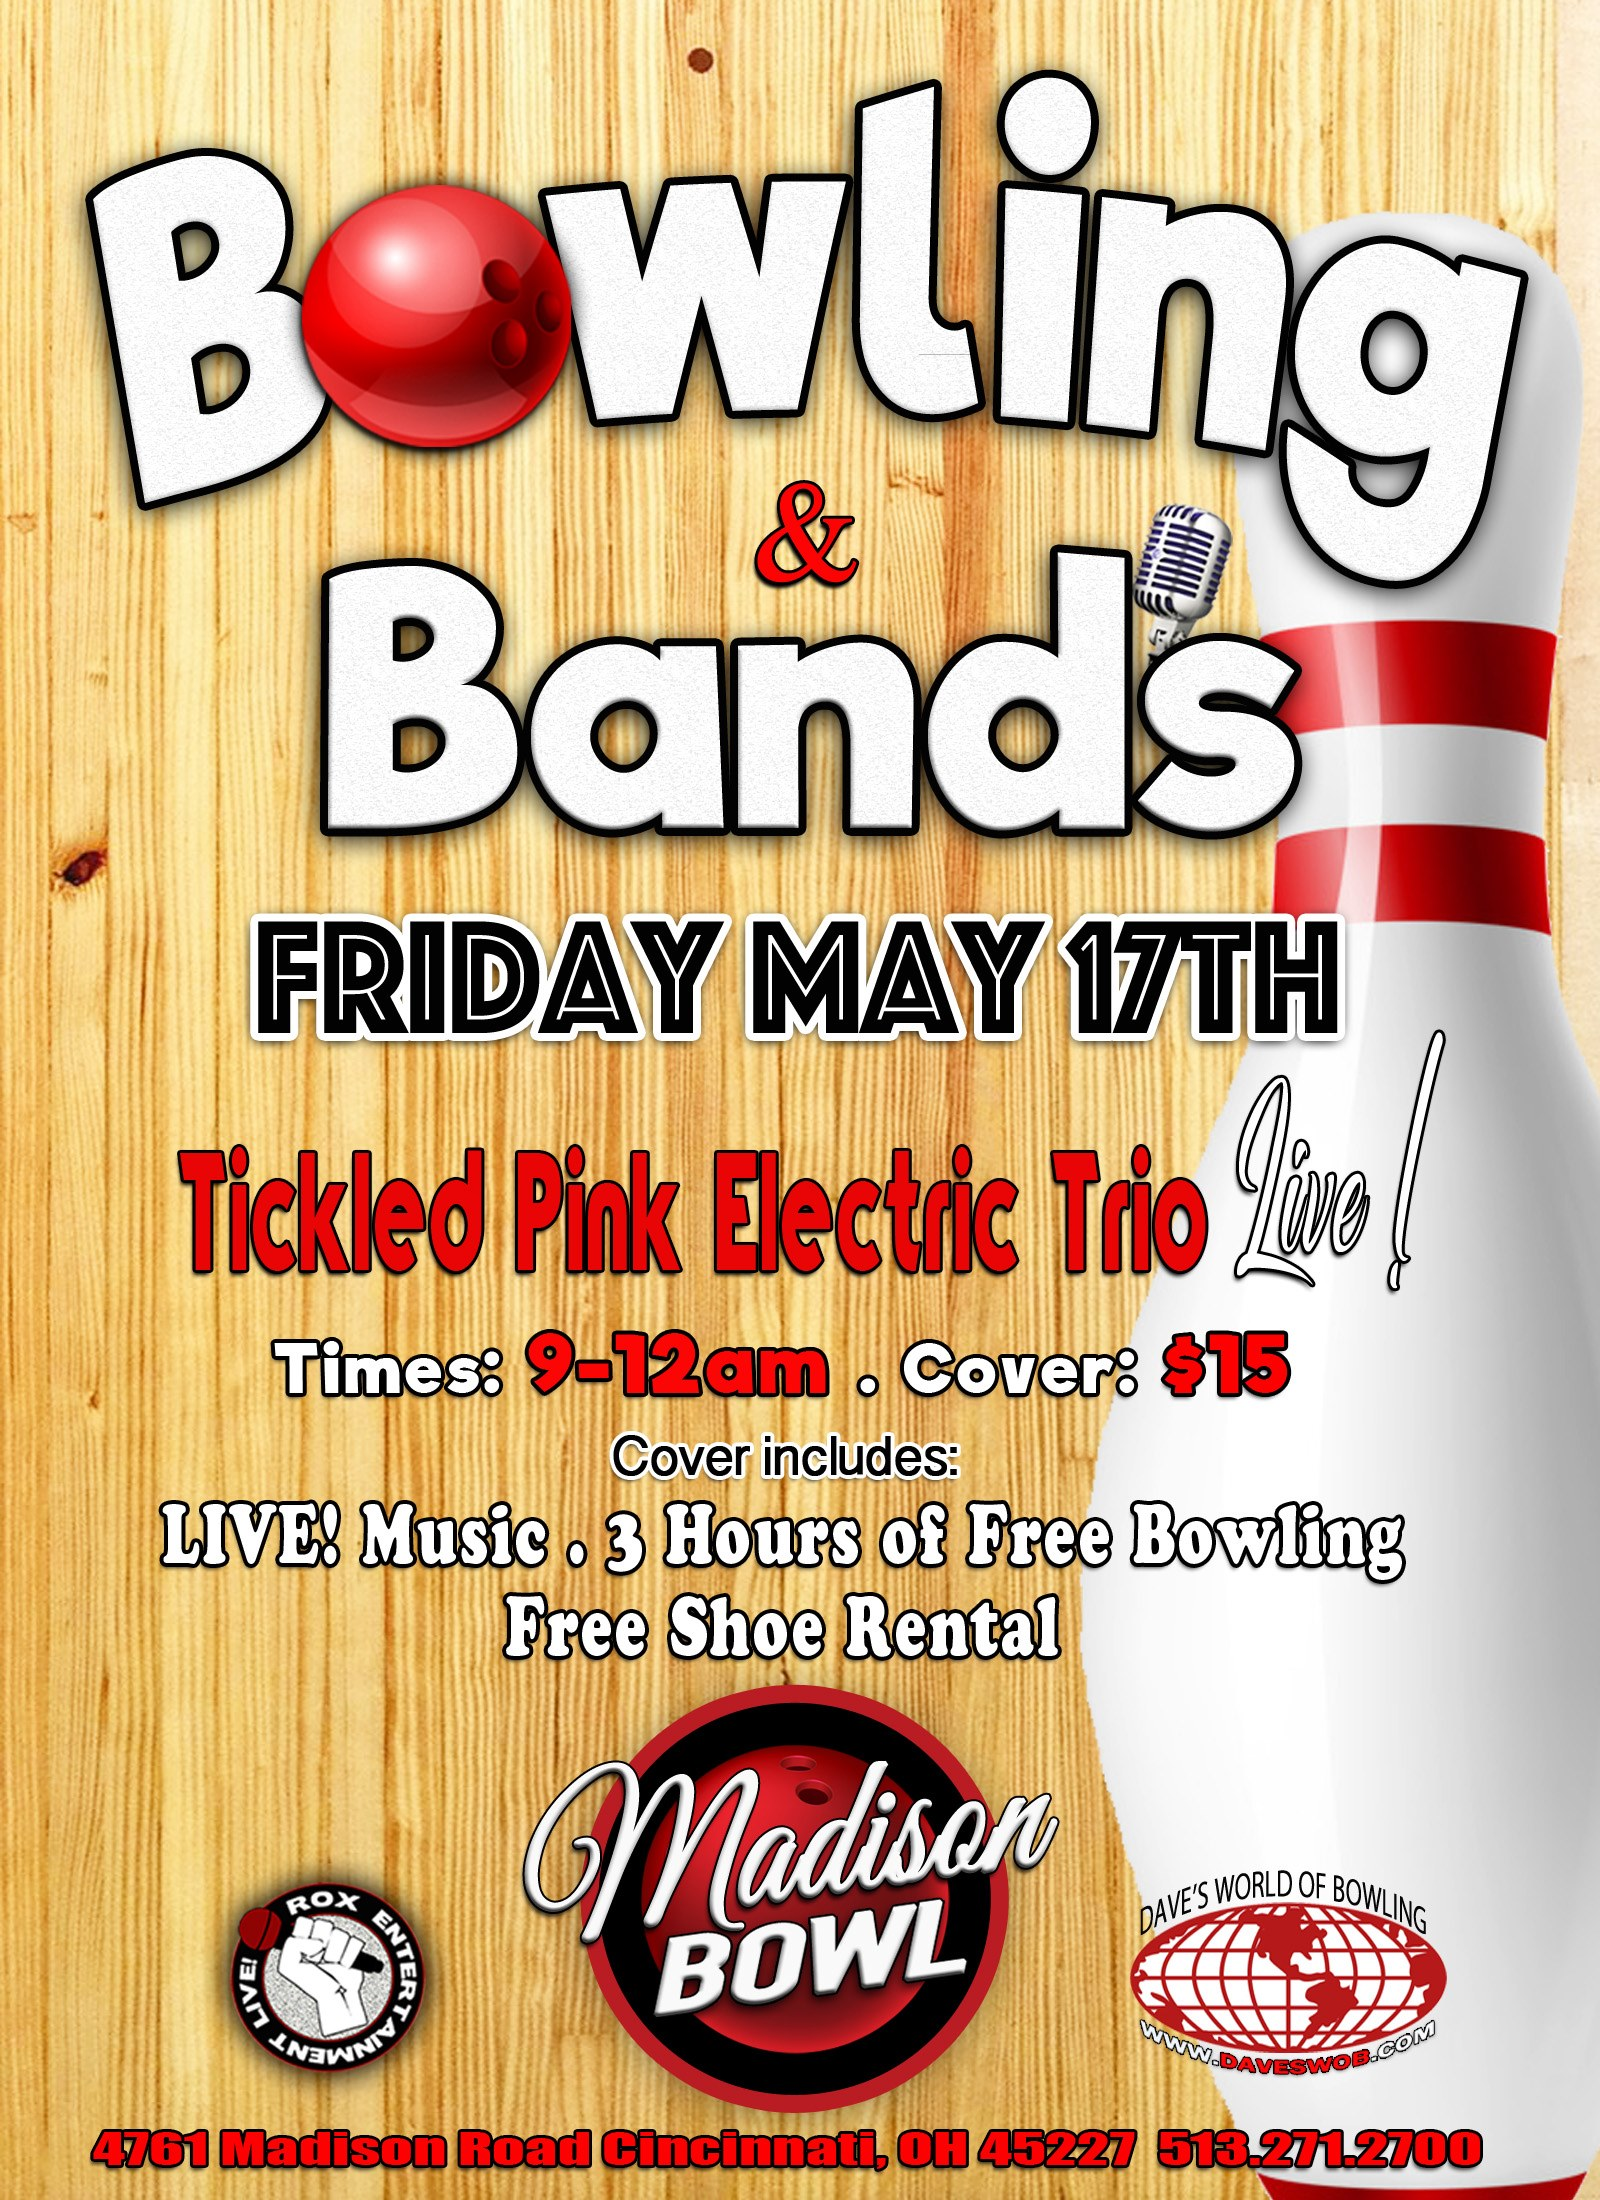 Bowling and Bands.jpg